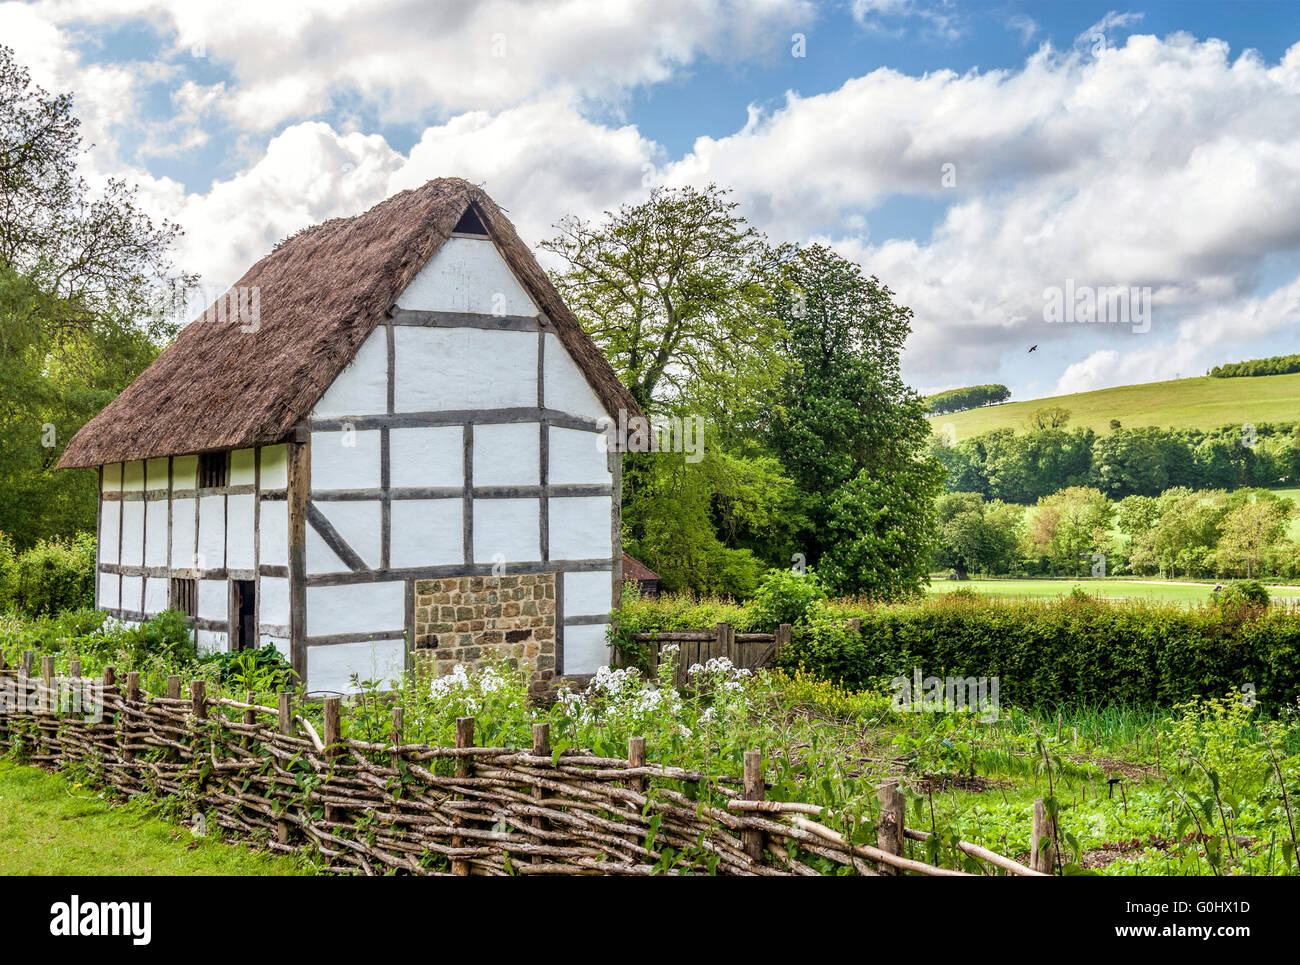 English Farmhouse in the middle of a field at the Weald & Downland Open Air Museum of Singleton, West Sussex, - Stock Image